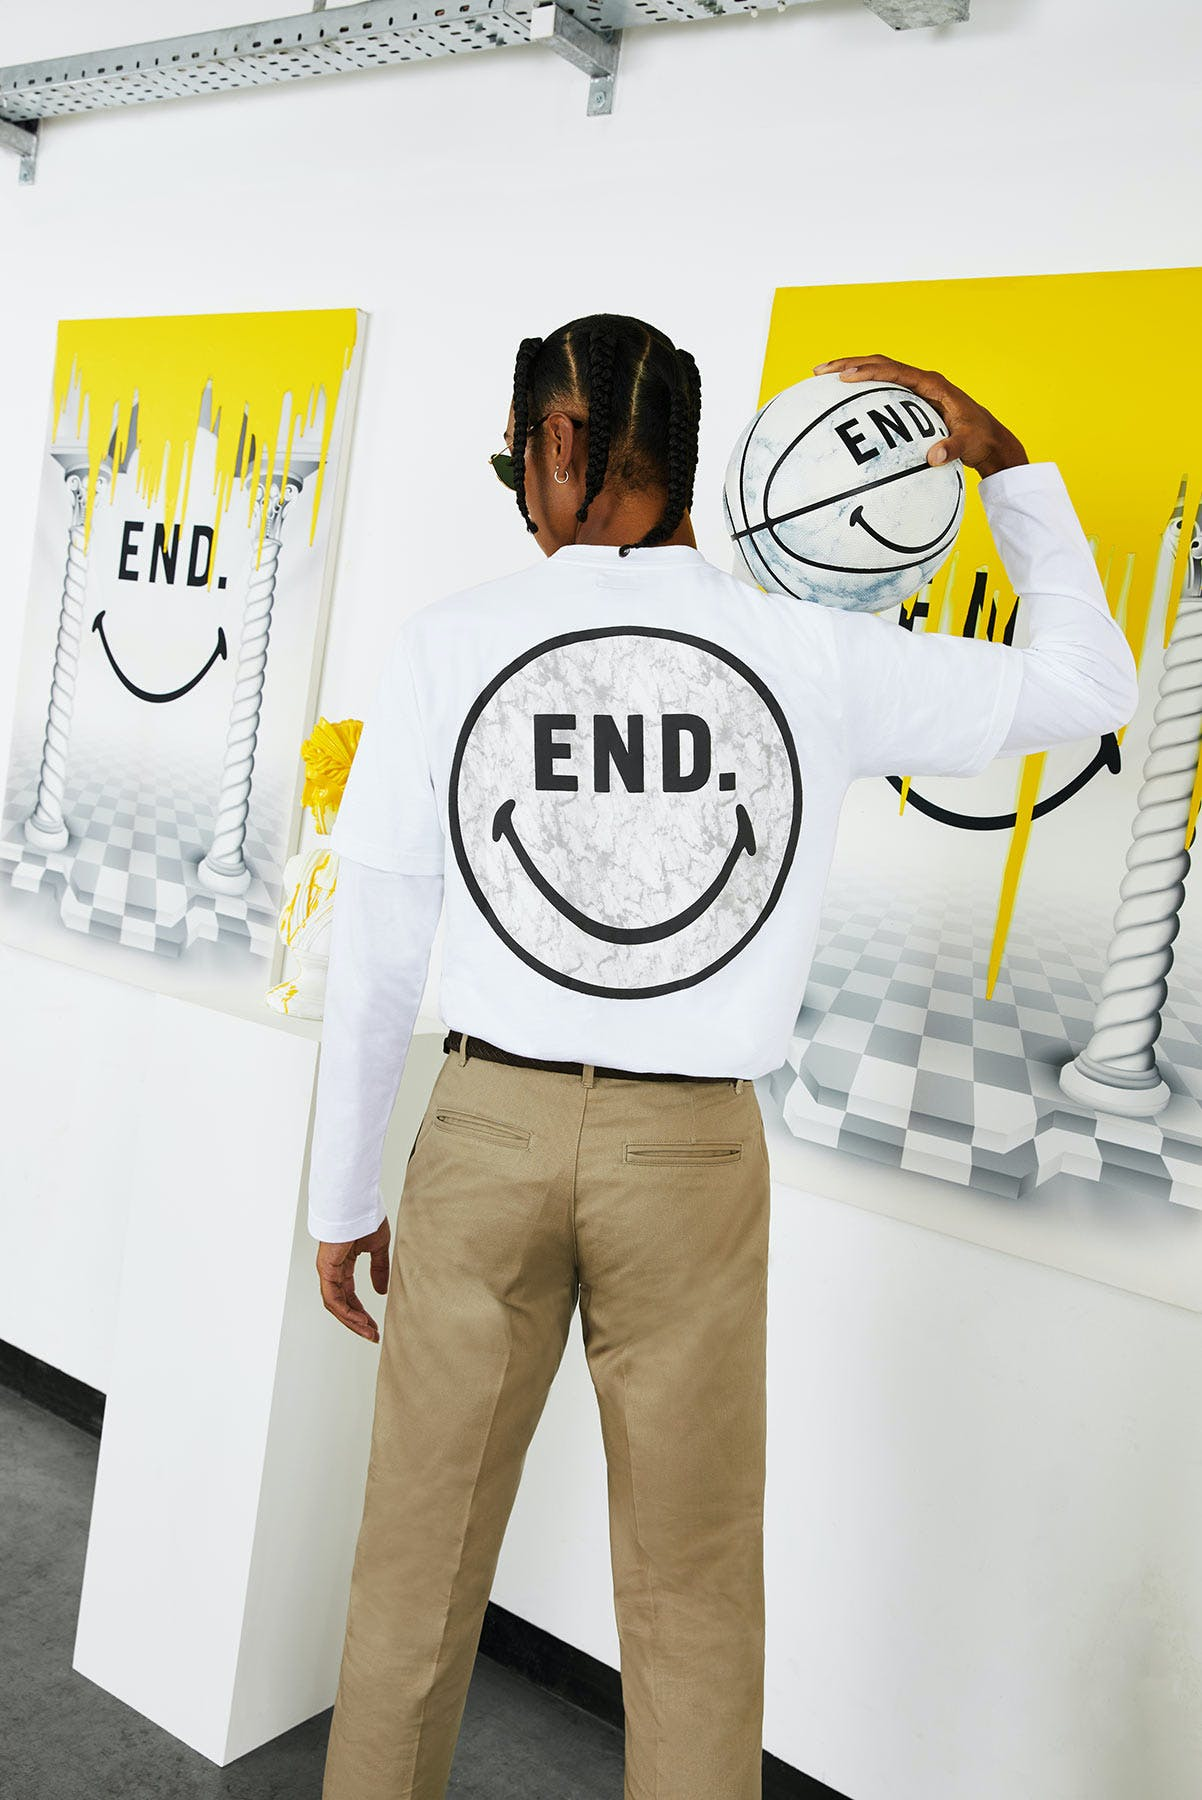 END. x Chinatown Market collaboration Smiley face tee